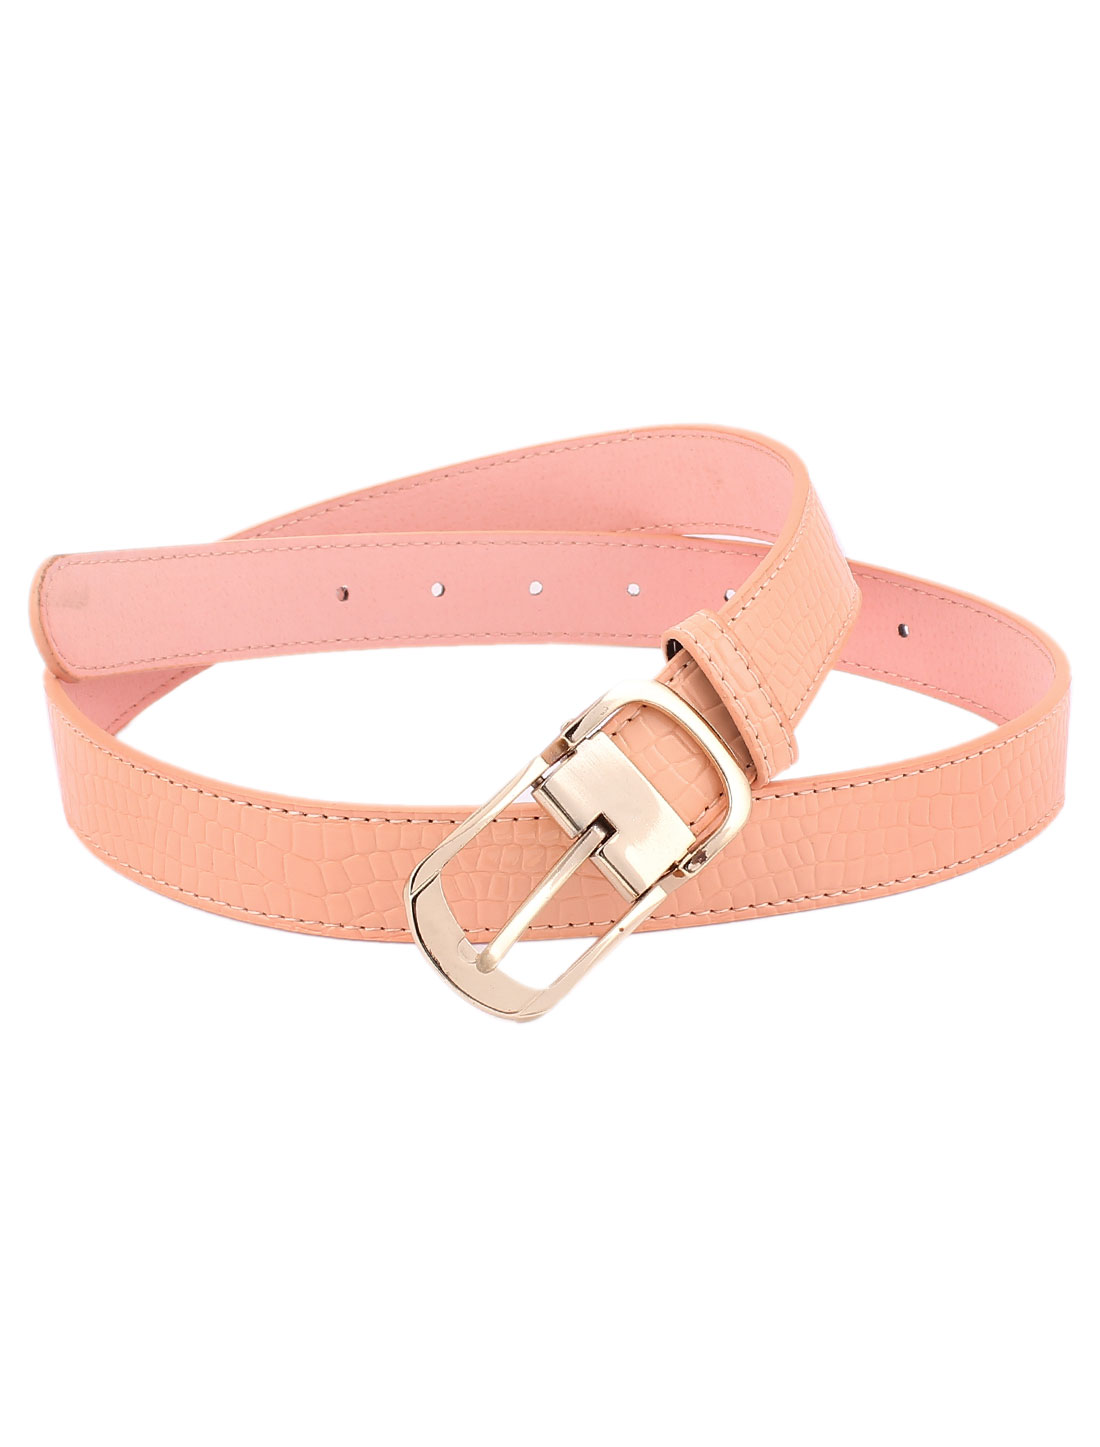 Women Gold Tone Single Prong Buckle Pink Waist Belt Waistband